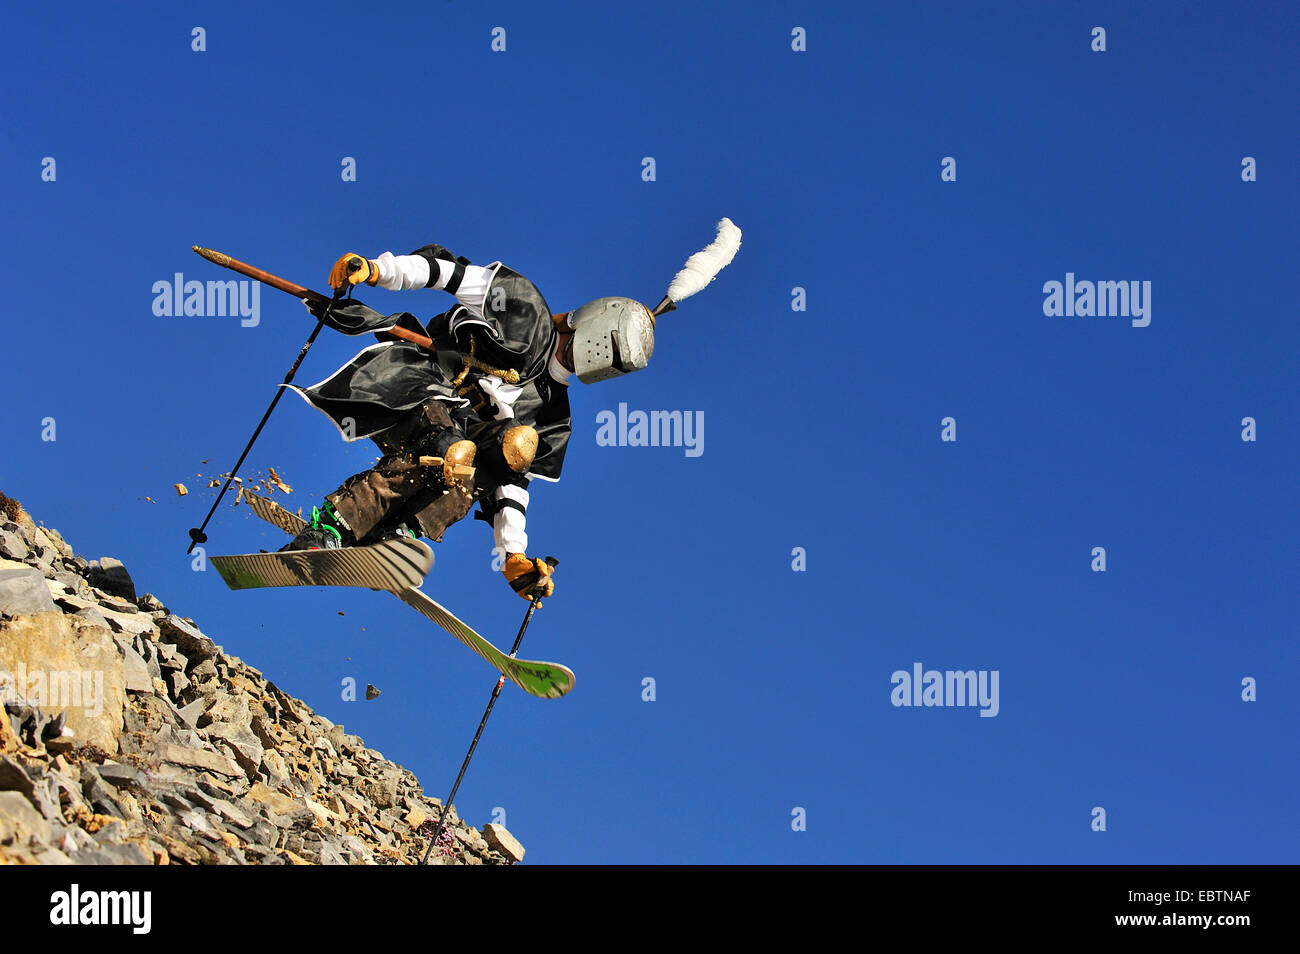 freeride skier disguised as knight going downhill on gravel slope - Stock Image